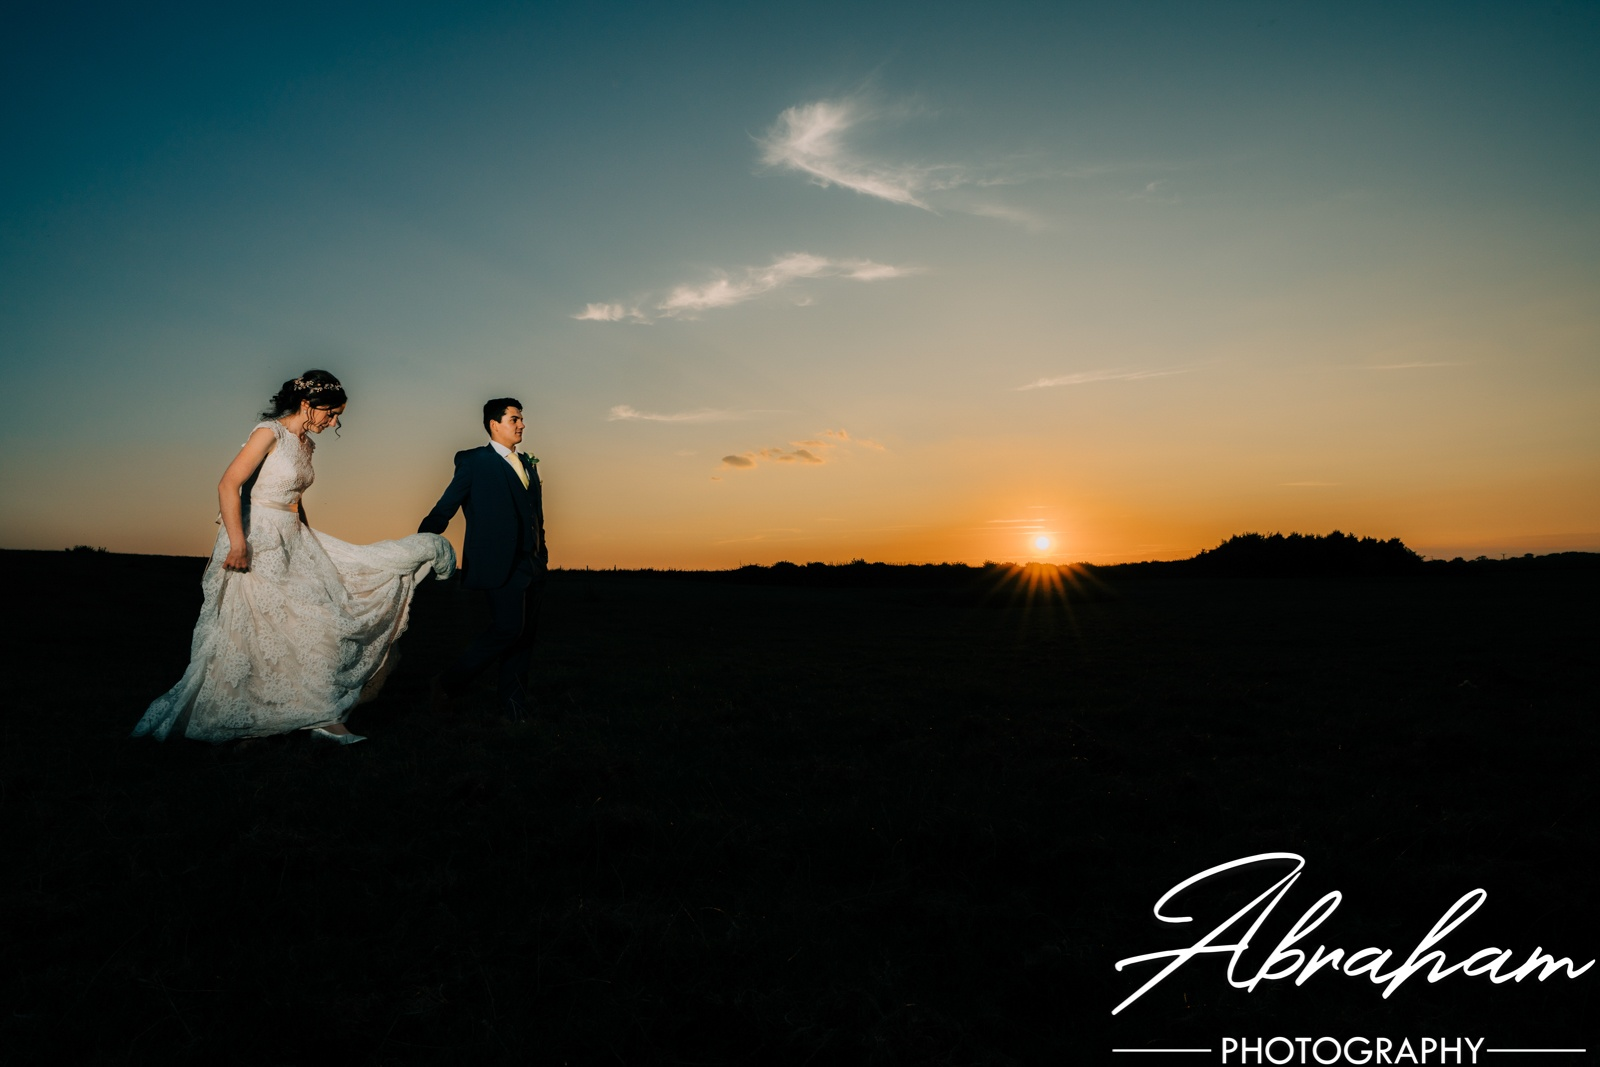 Hull Wedding Photographer | East Yorkshire Wedding Photographer | Dunedin House Wedding Photography